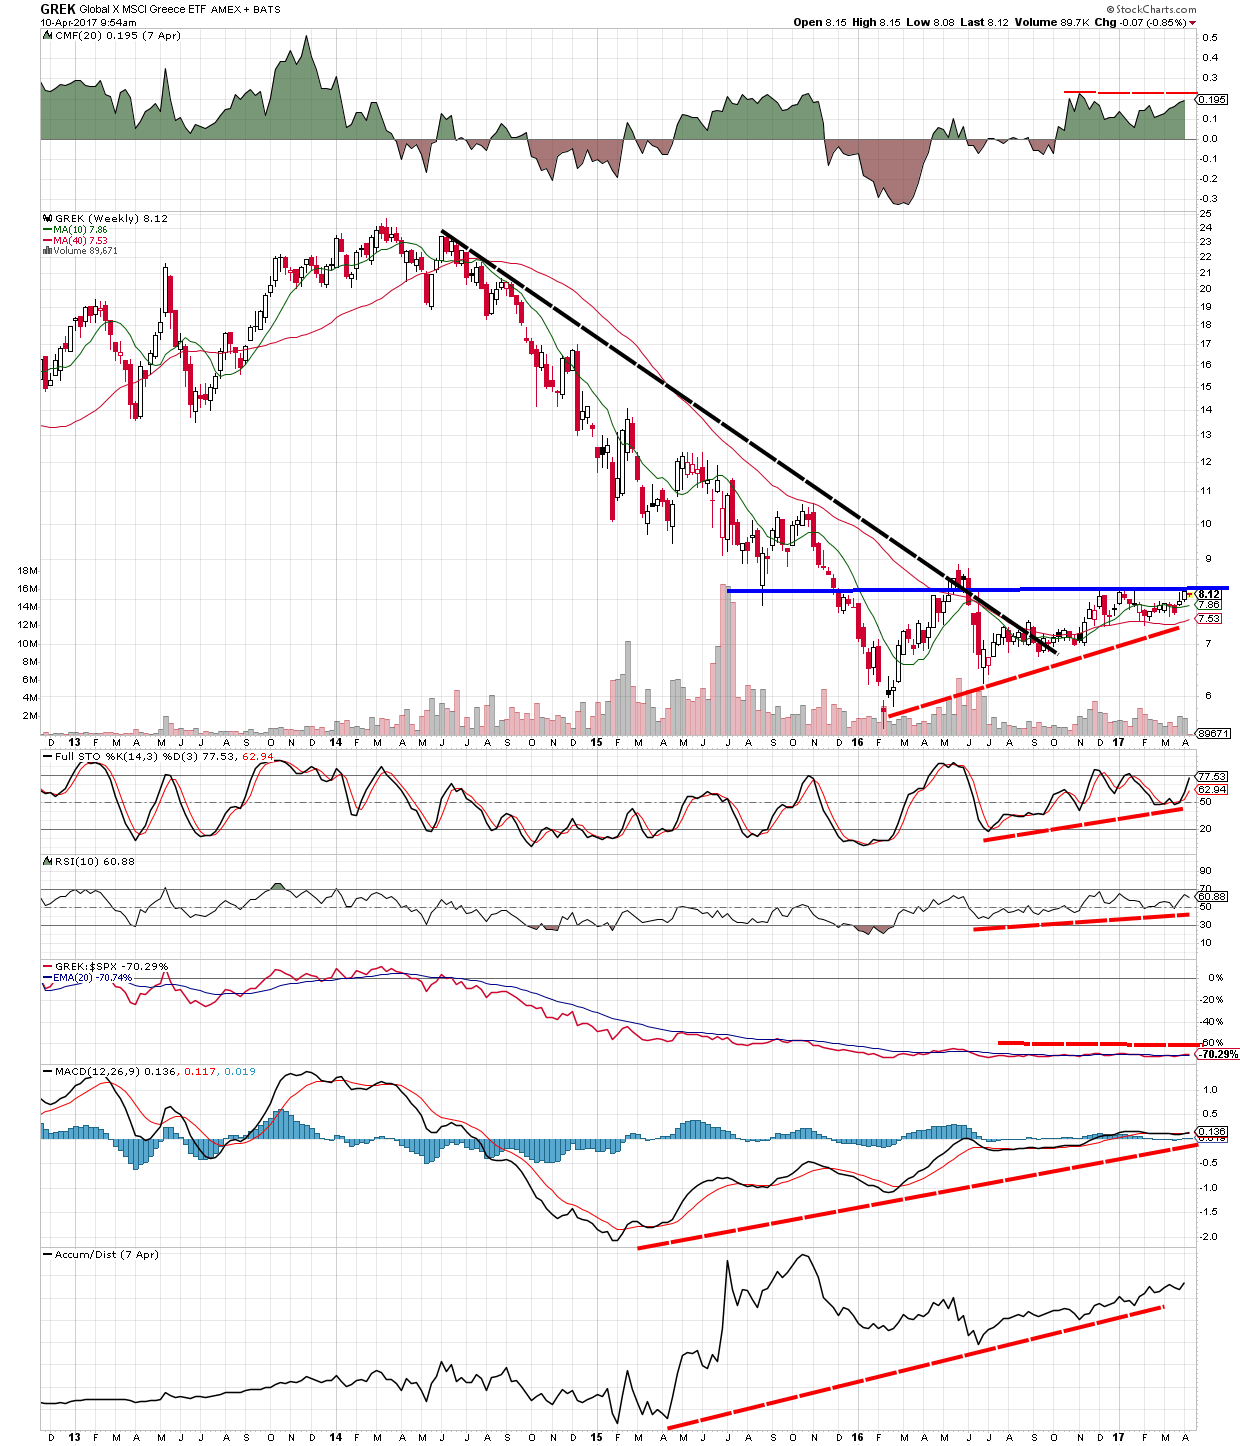 Is Greece an oversold market - monthly chart of GREK ETF showing potential formation of consolidation pattern